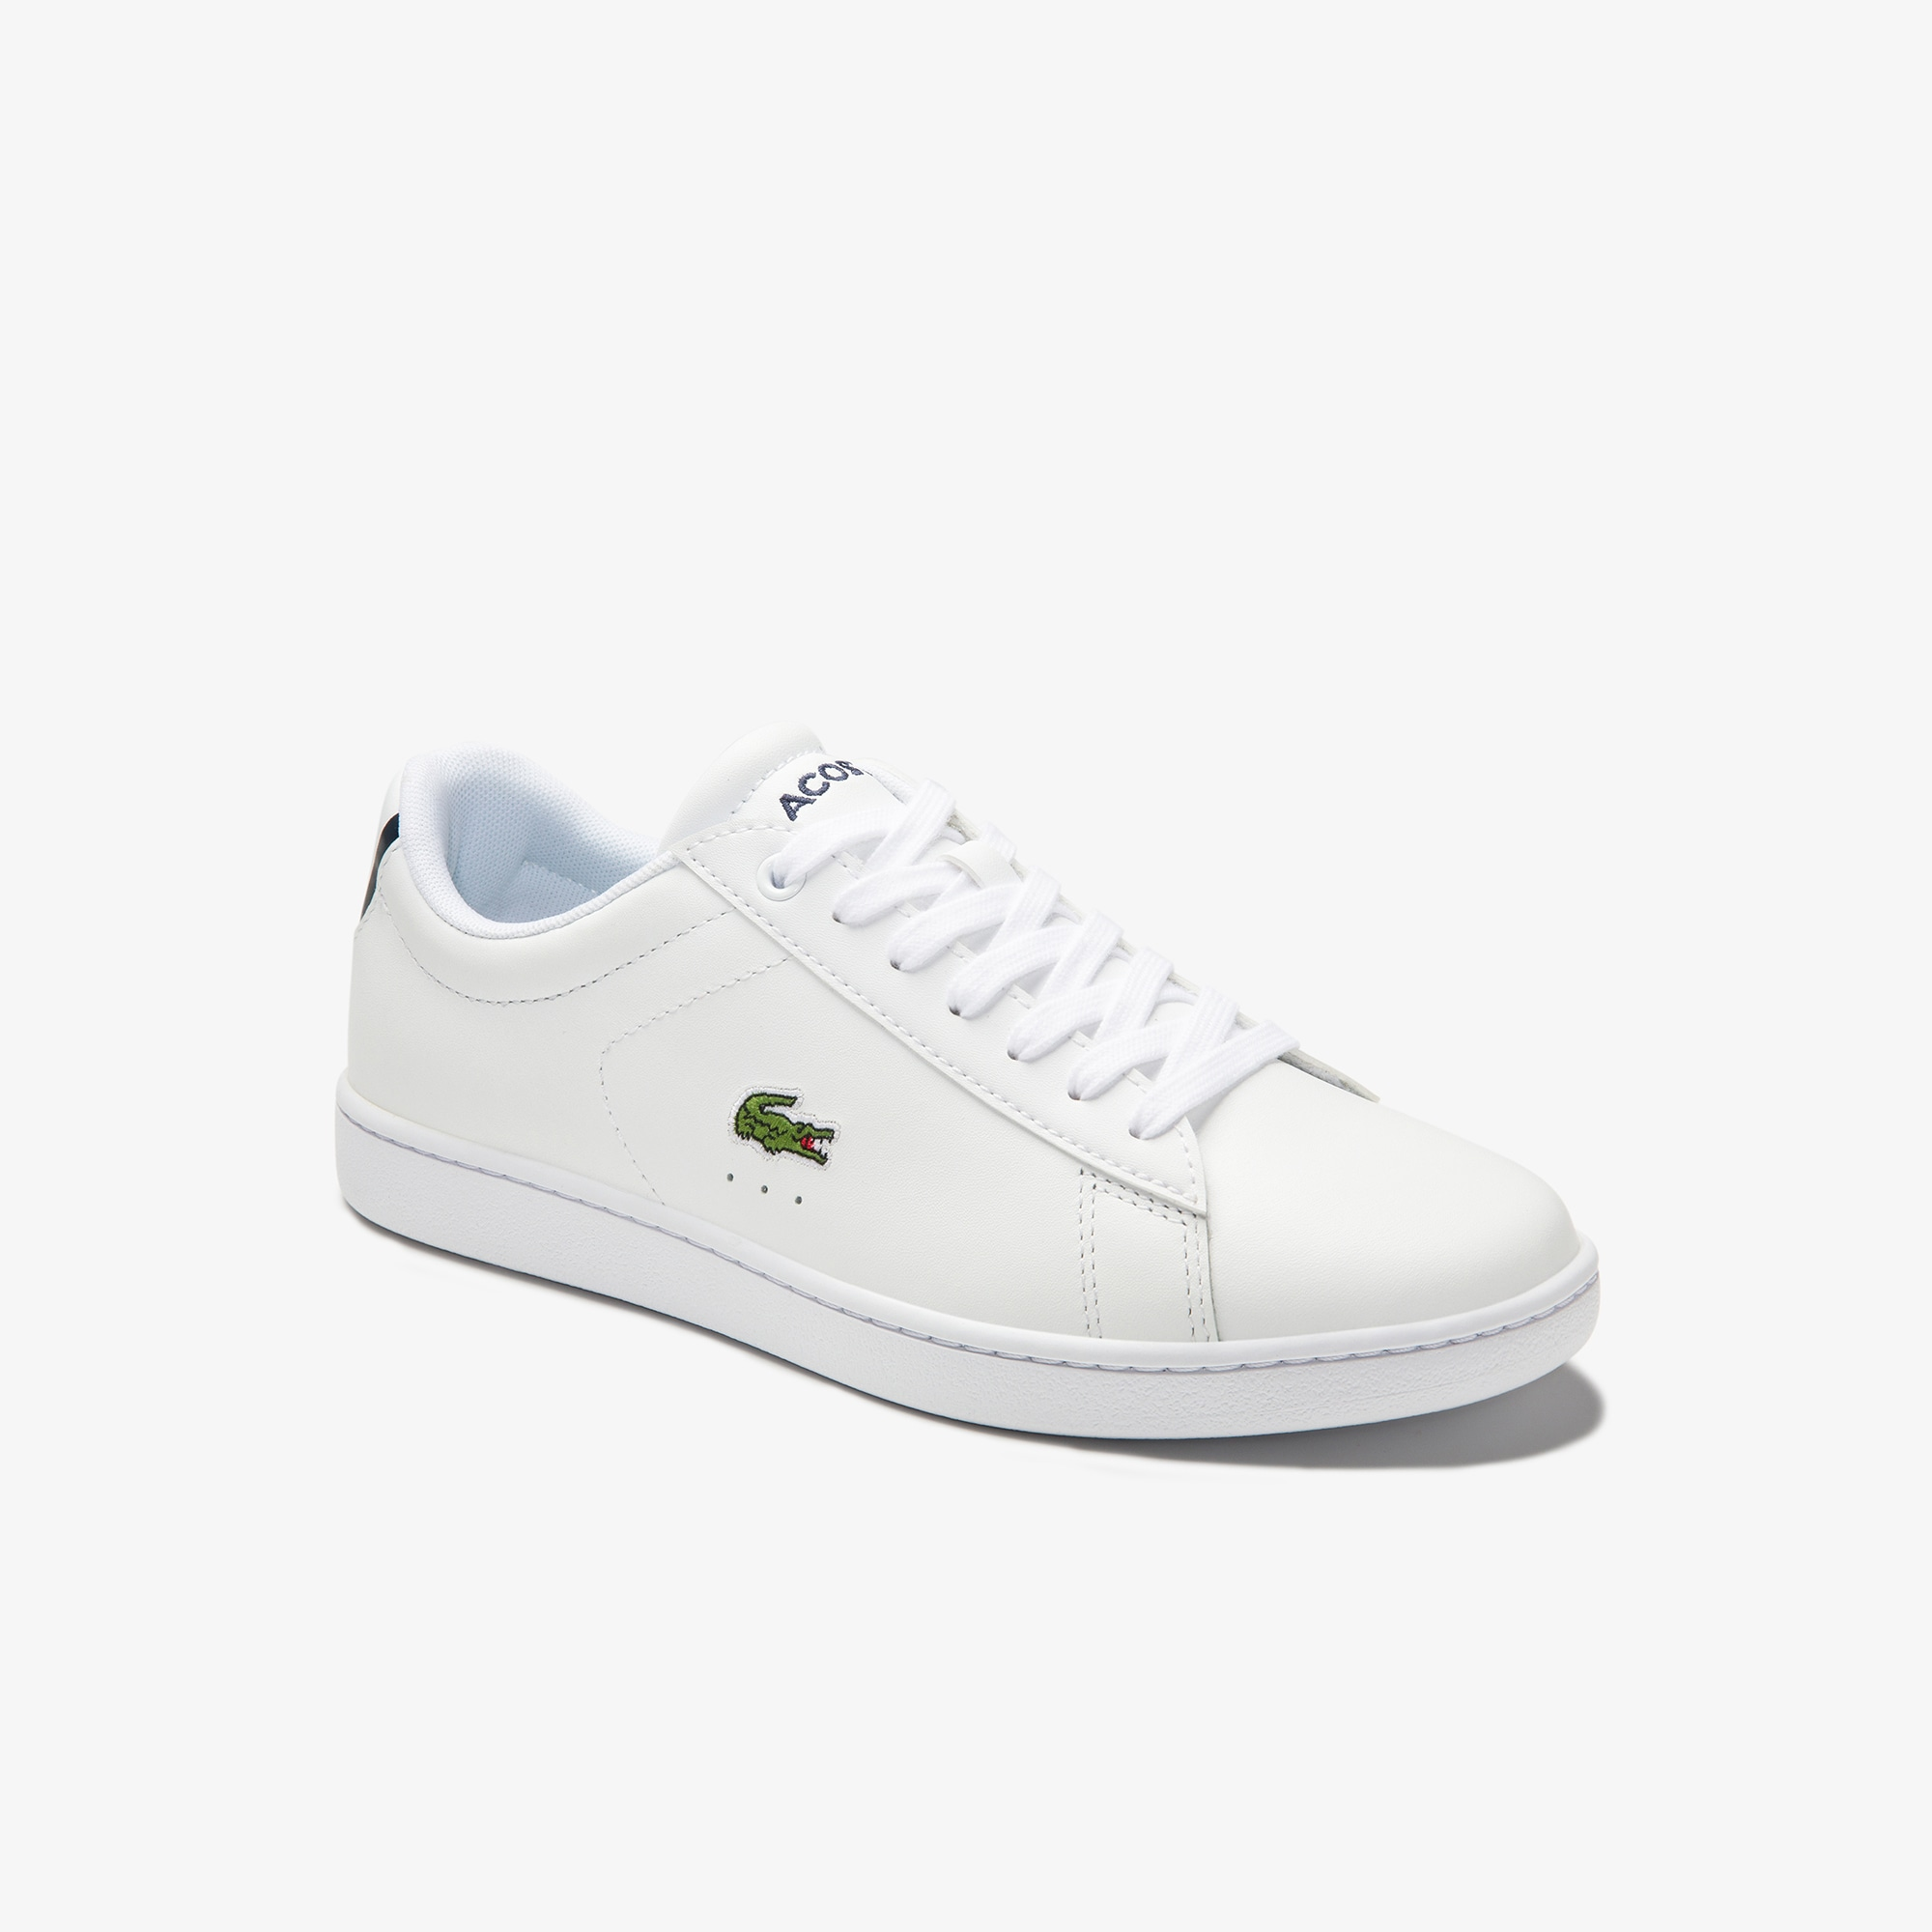 566e52ef0641 All Lacoste Shoes